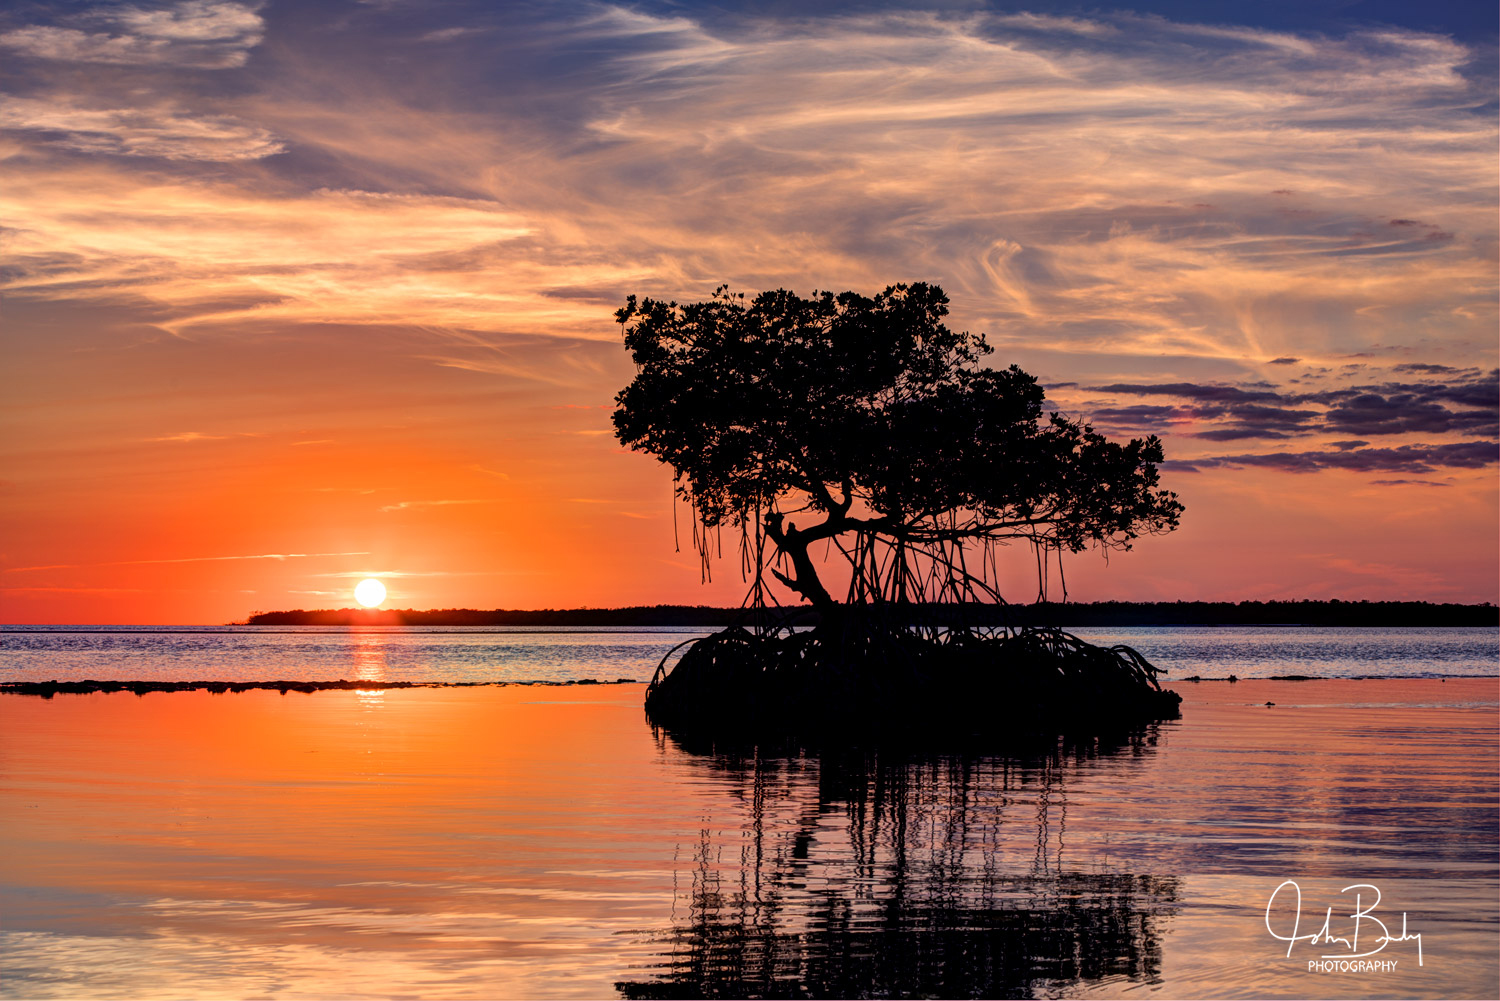 TEN THOUSAND ISLANDS NATIONAL WILDLIFE REFUGE The Ten Thousand Islands is located in Collier County, Florida. The Wildlife Refuge...